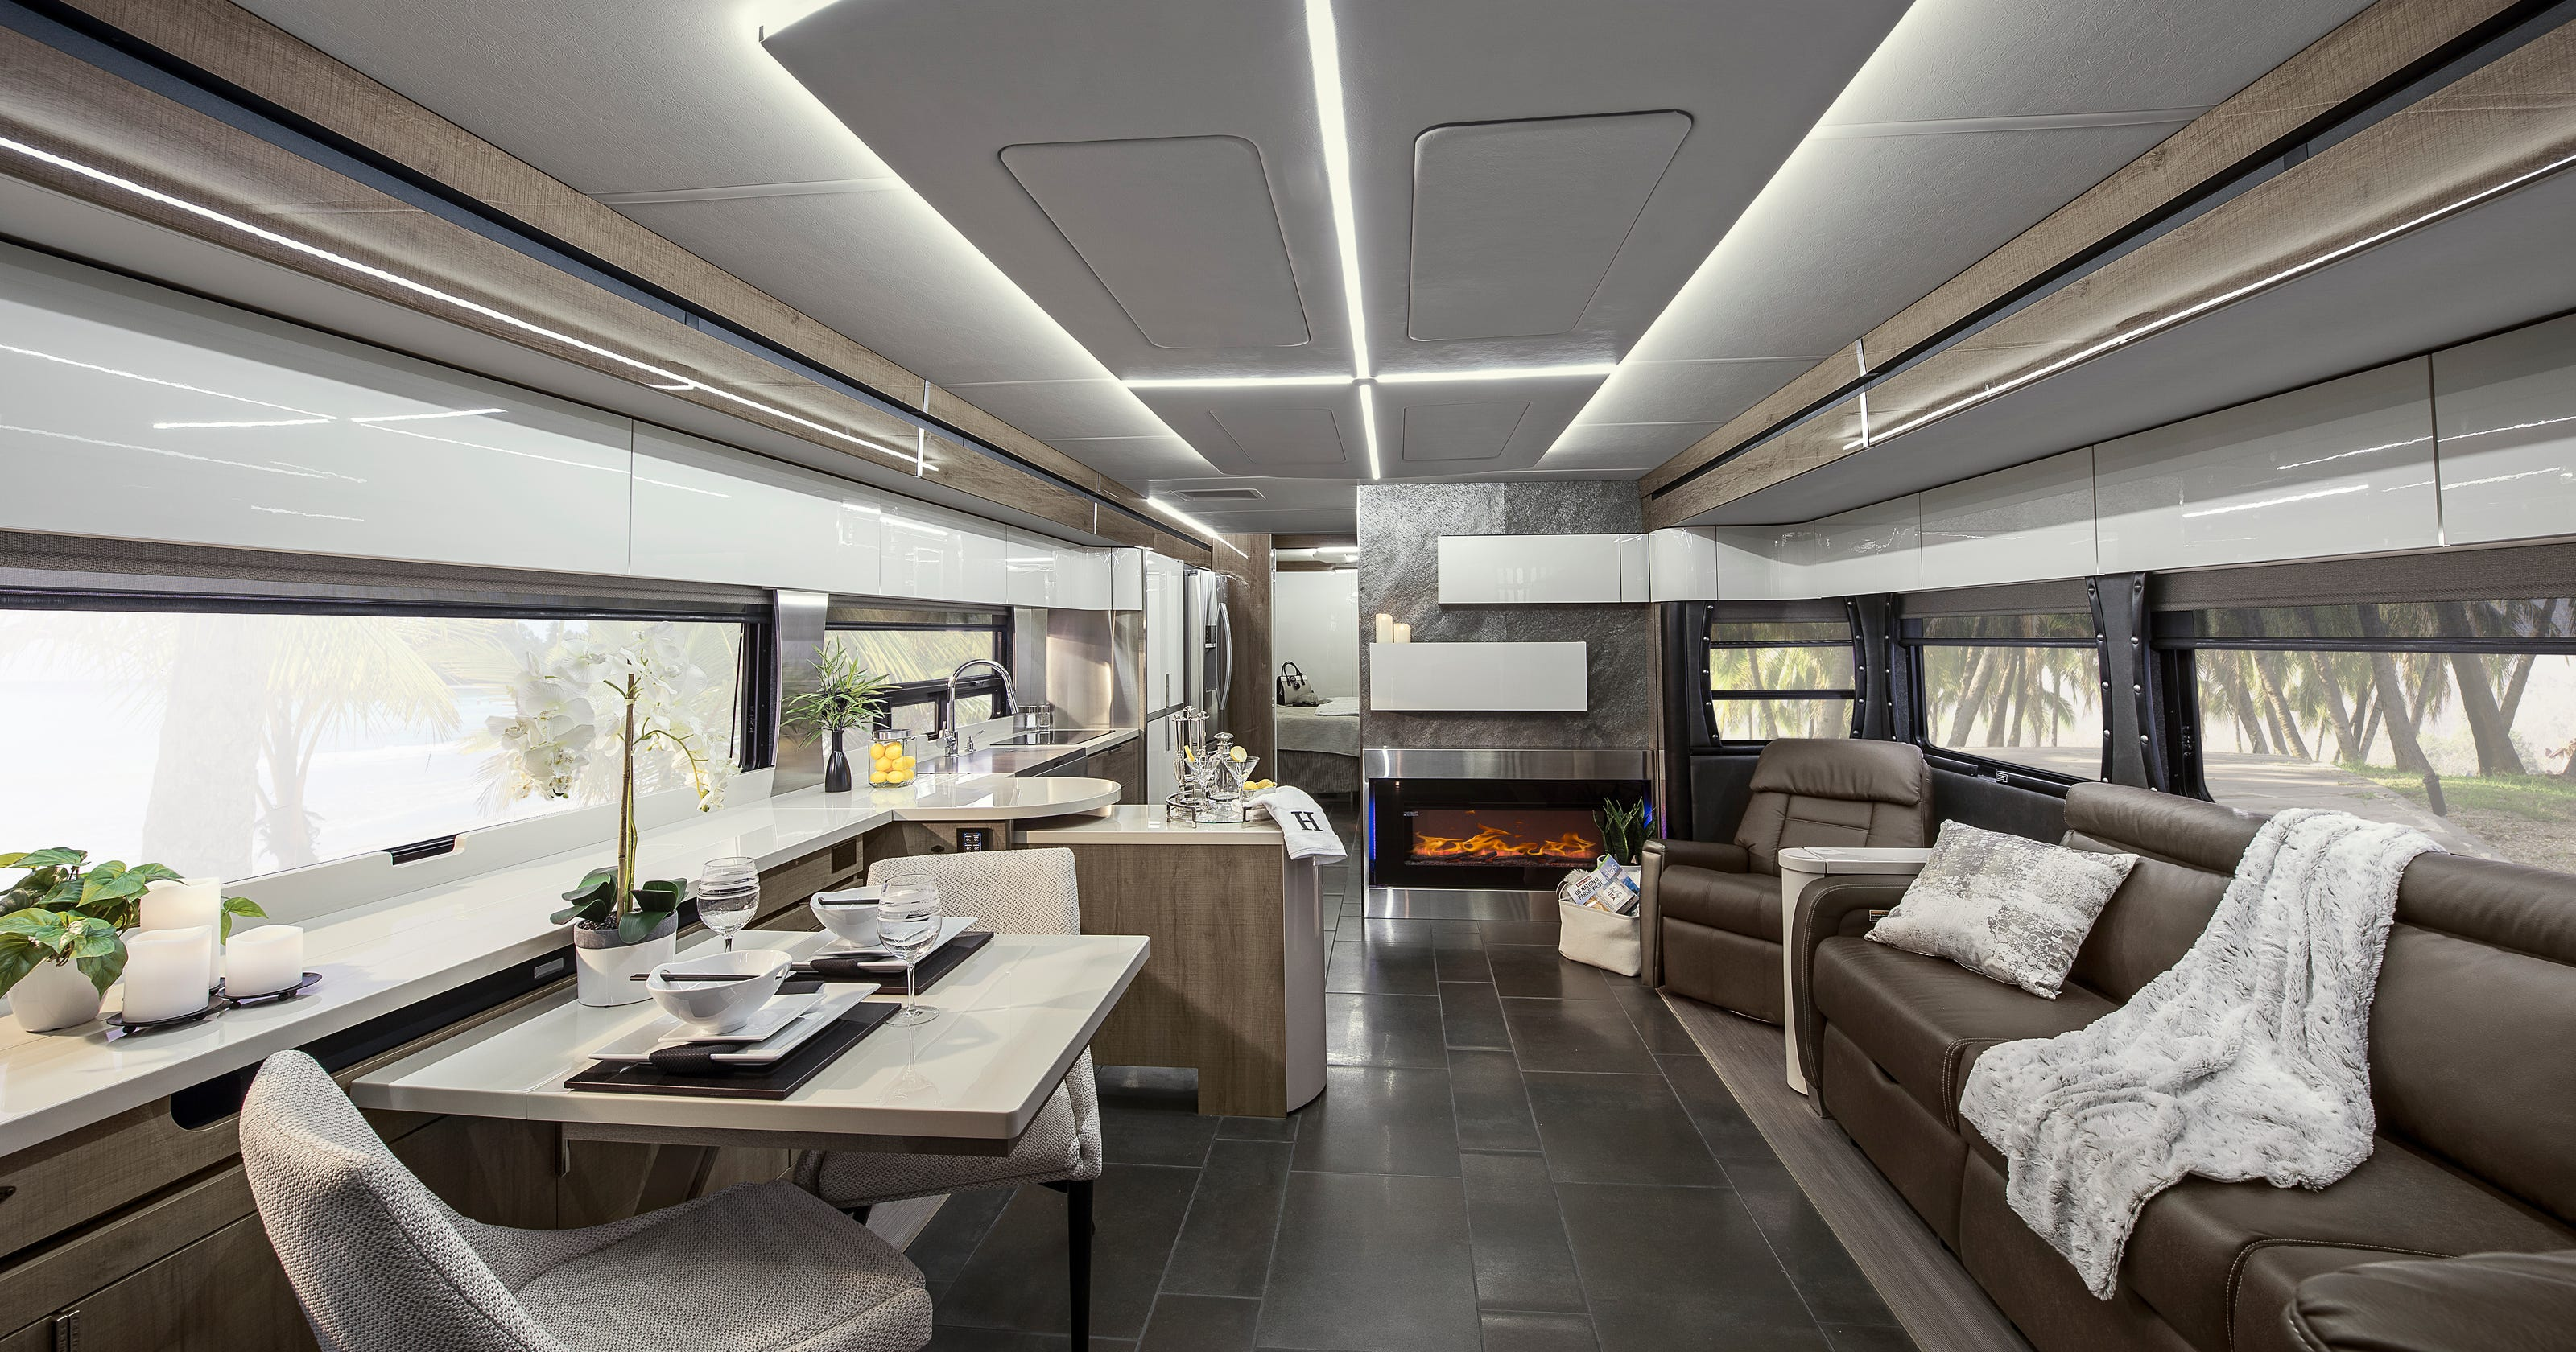 Iowa's Winnebago unveils bold new motorhome designs